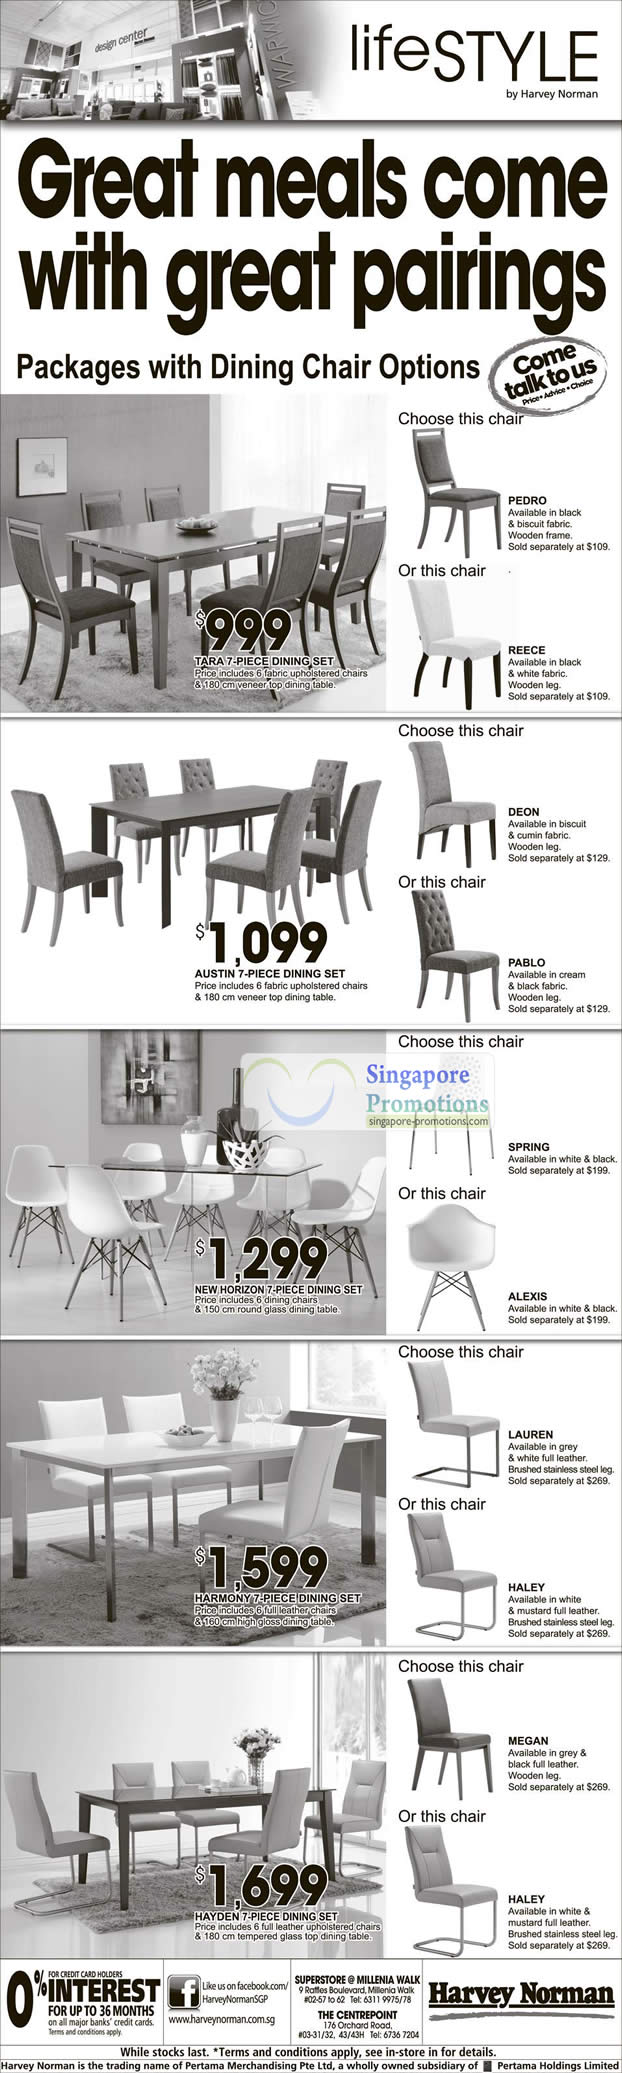 TARA DINING SET, AUSTIN DINING SET, NEW HORIZON DINING SET, HARMONY DINING SET, HAYDEN DINING SET